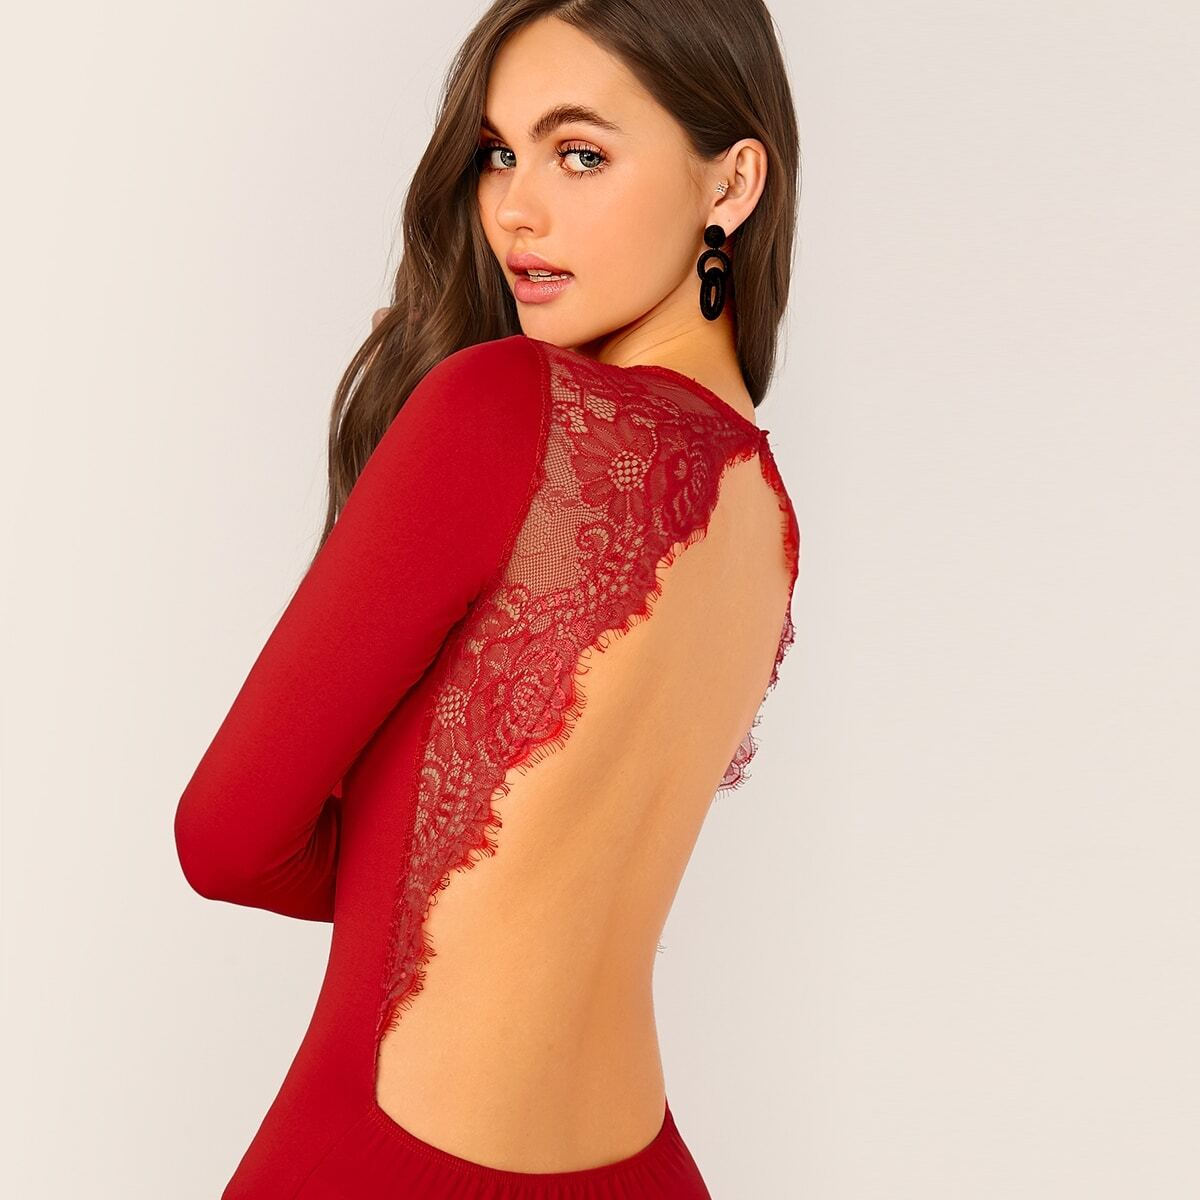 Rood Sexy Vlak Bodysuits Contract kant